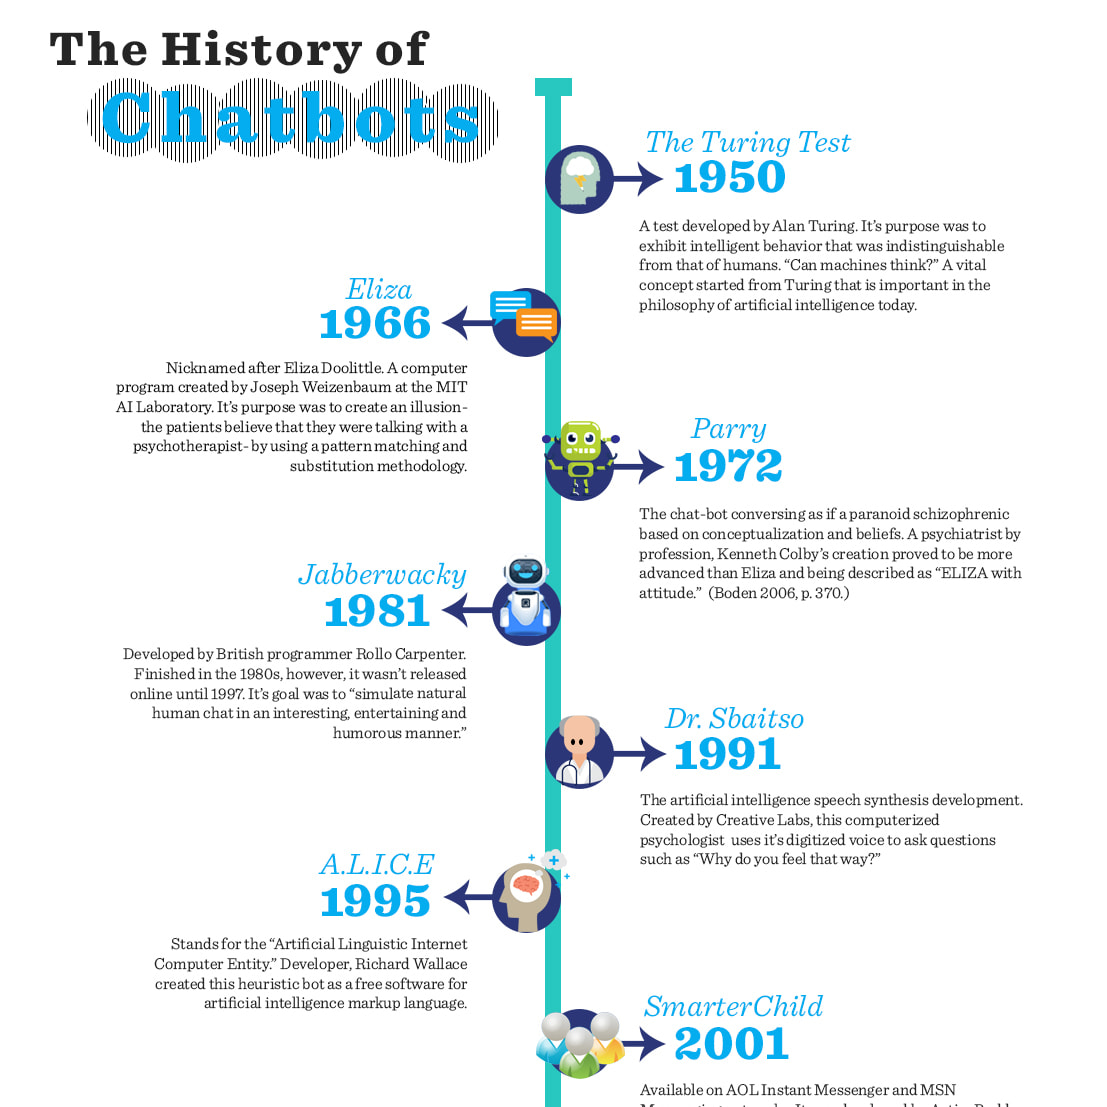 Chatterbots 2 – A History of Chatbots